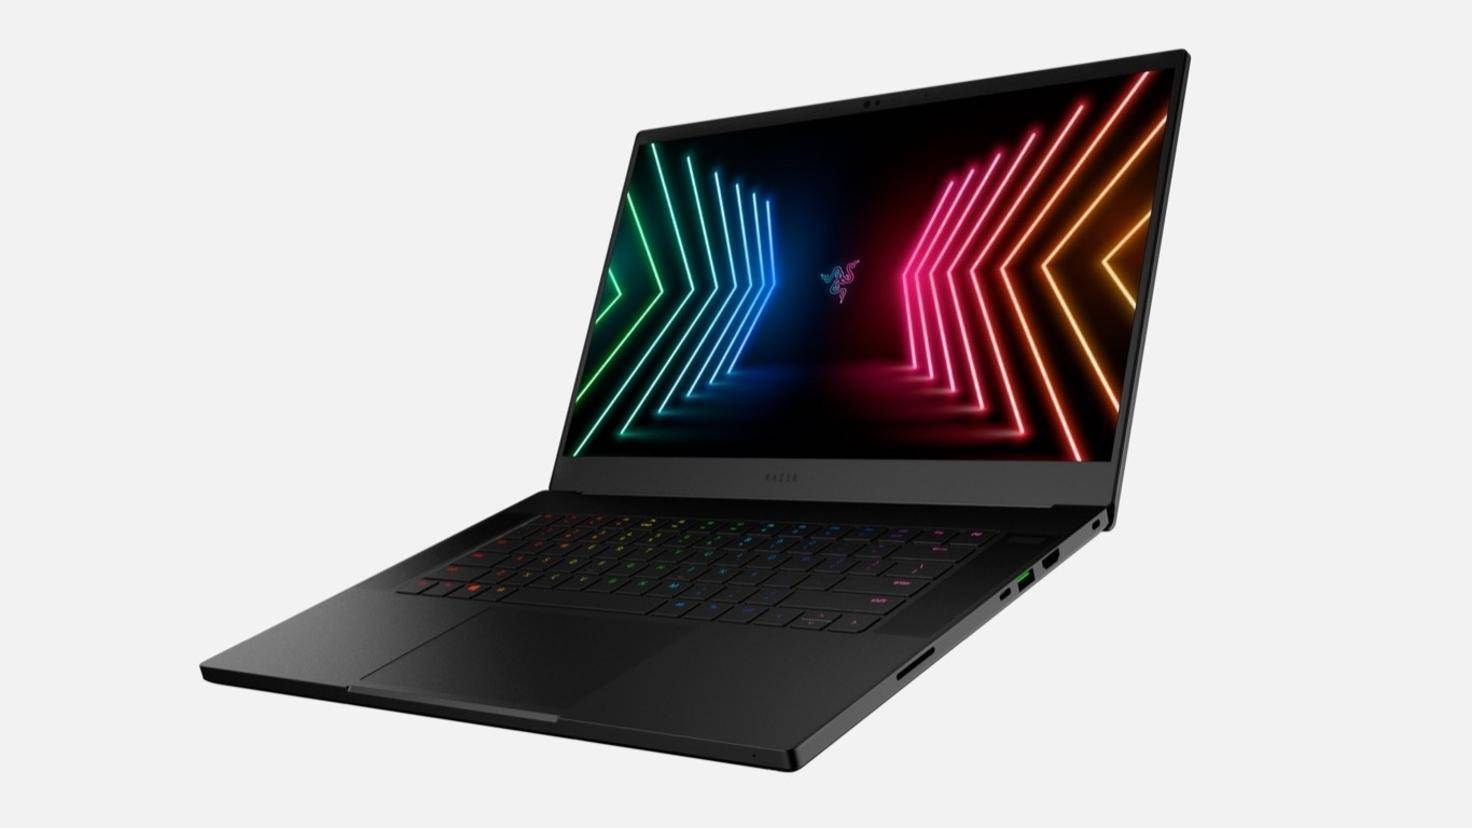 Razer_Blade_15_Advanced_2021_FHD_Render_2